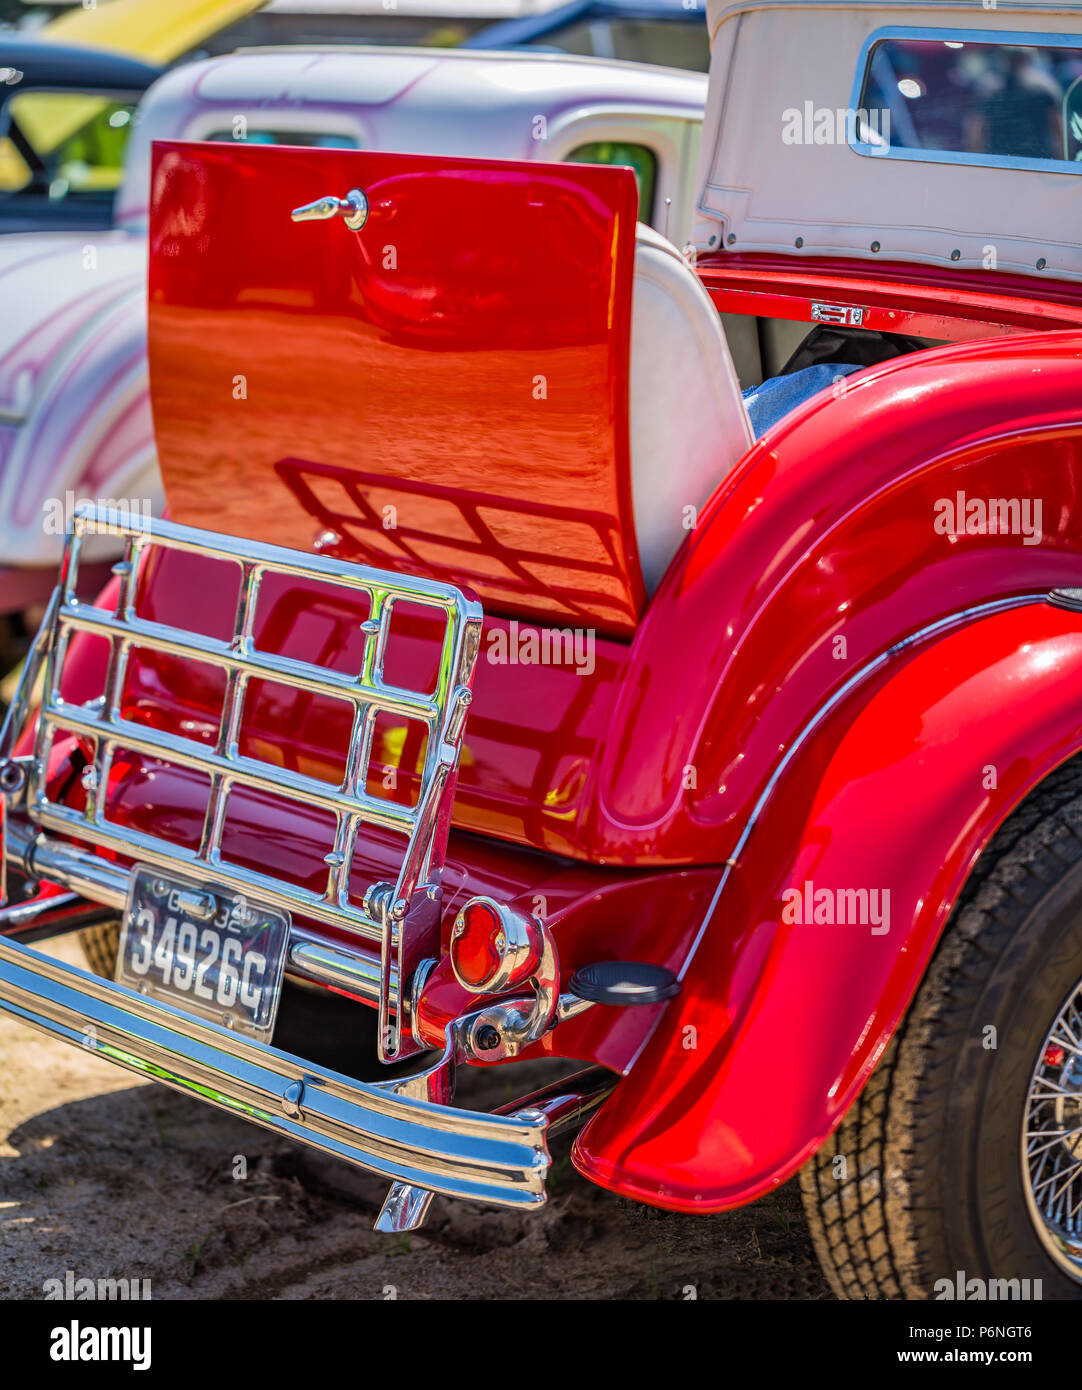 Rumble seat and luggage rack on a customized vintage automobile. - Stock Image